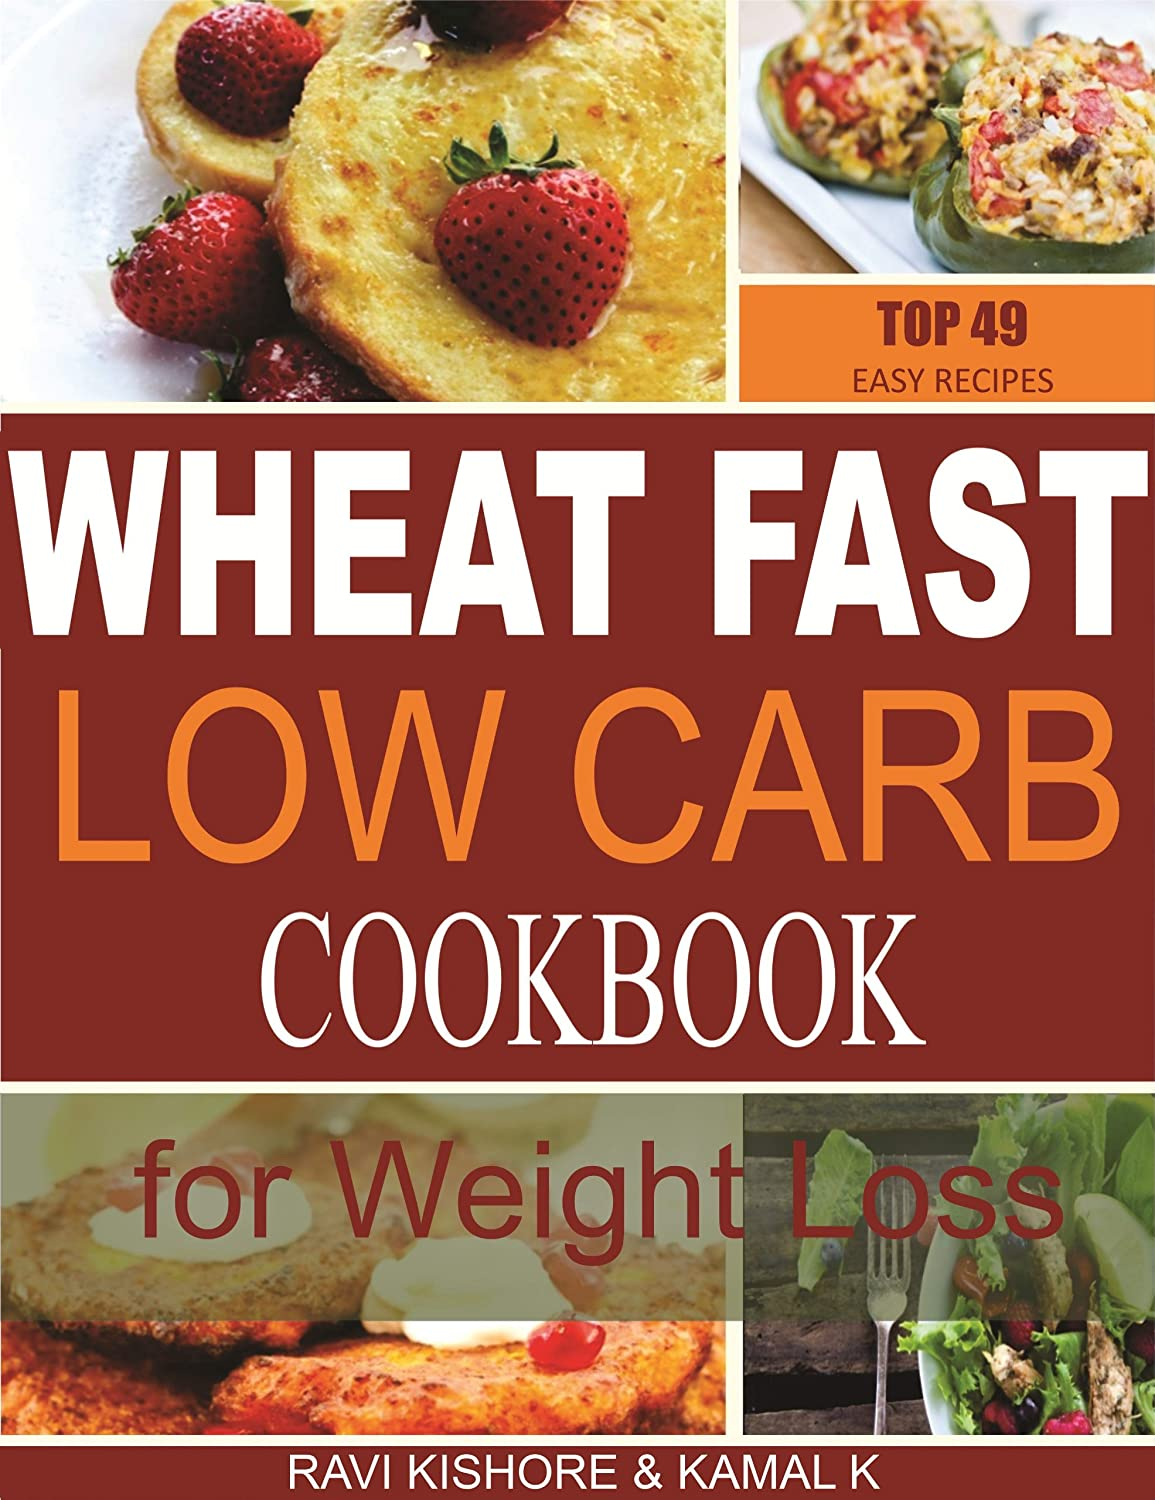 Wheat-fast-low-carb-cover-PAGE-1